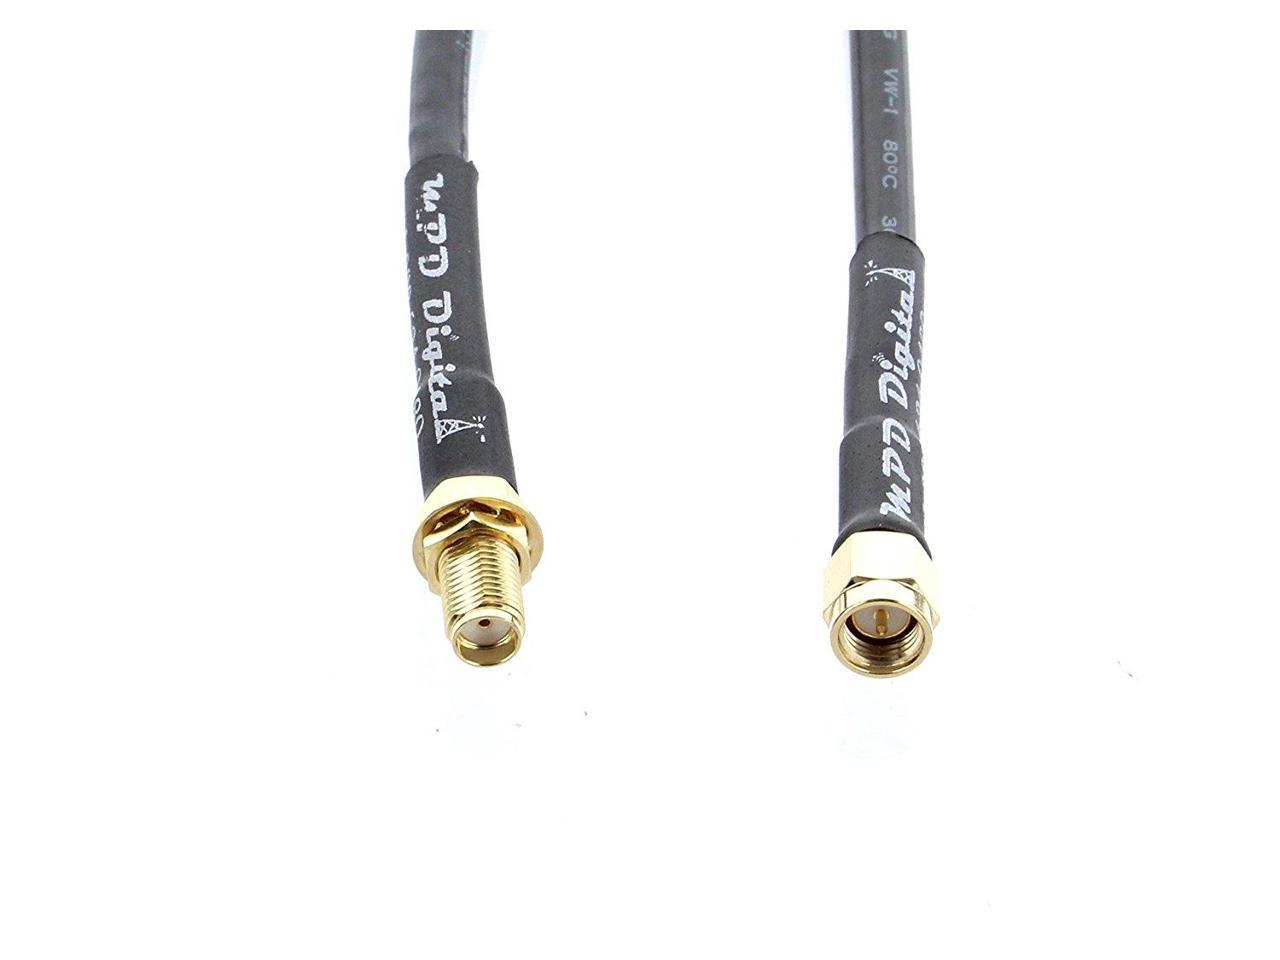 RF Pigtail Cable RP-TNC Female to RP-SMA Male RG58 50 cm RG-58 Coax Jumper Made in The U.S.A TM by MPD Digital